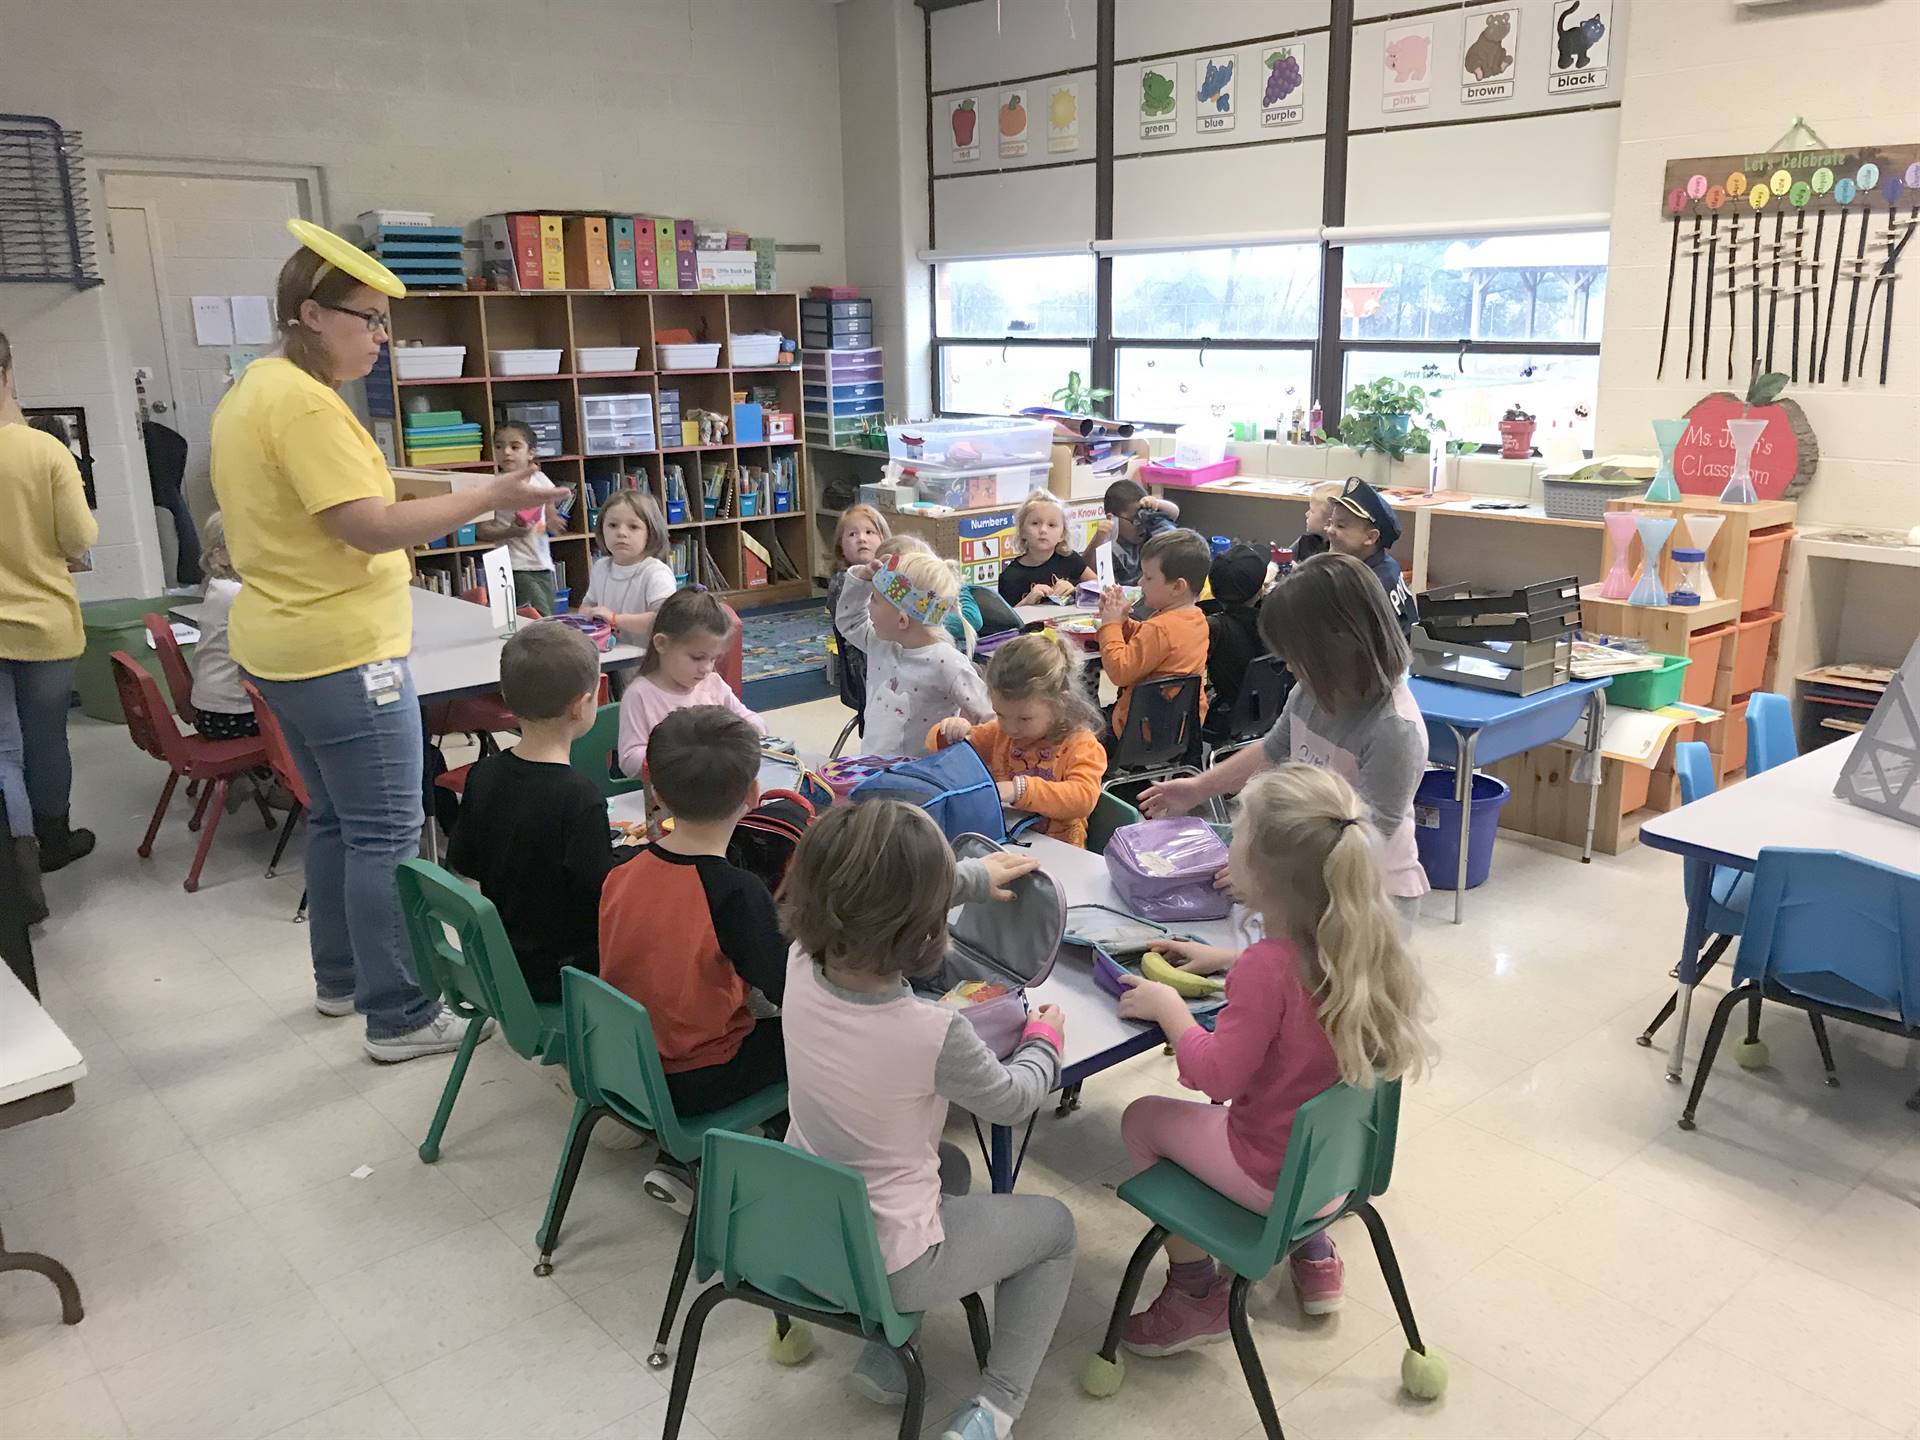 pre k class with costumes at tables